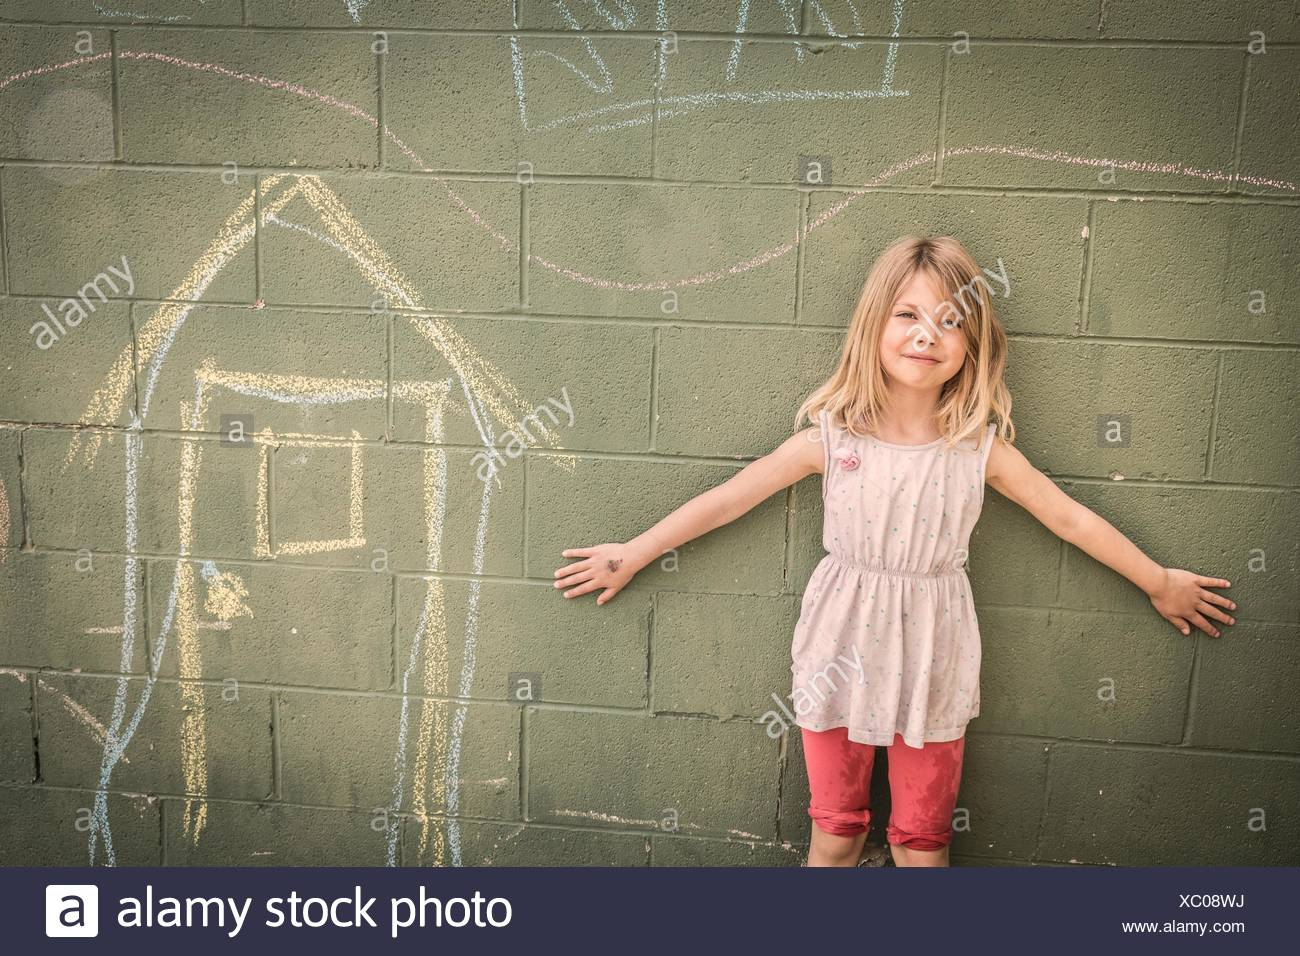 Girl in front of wall with chalk drawings, portrait - Stock Image